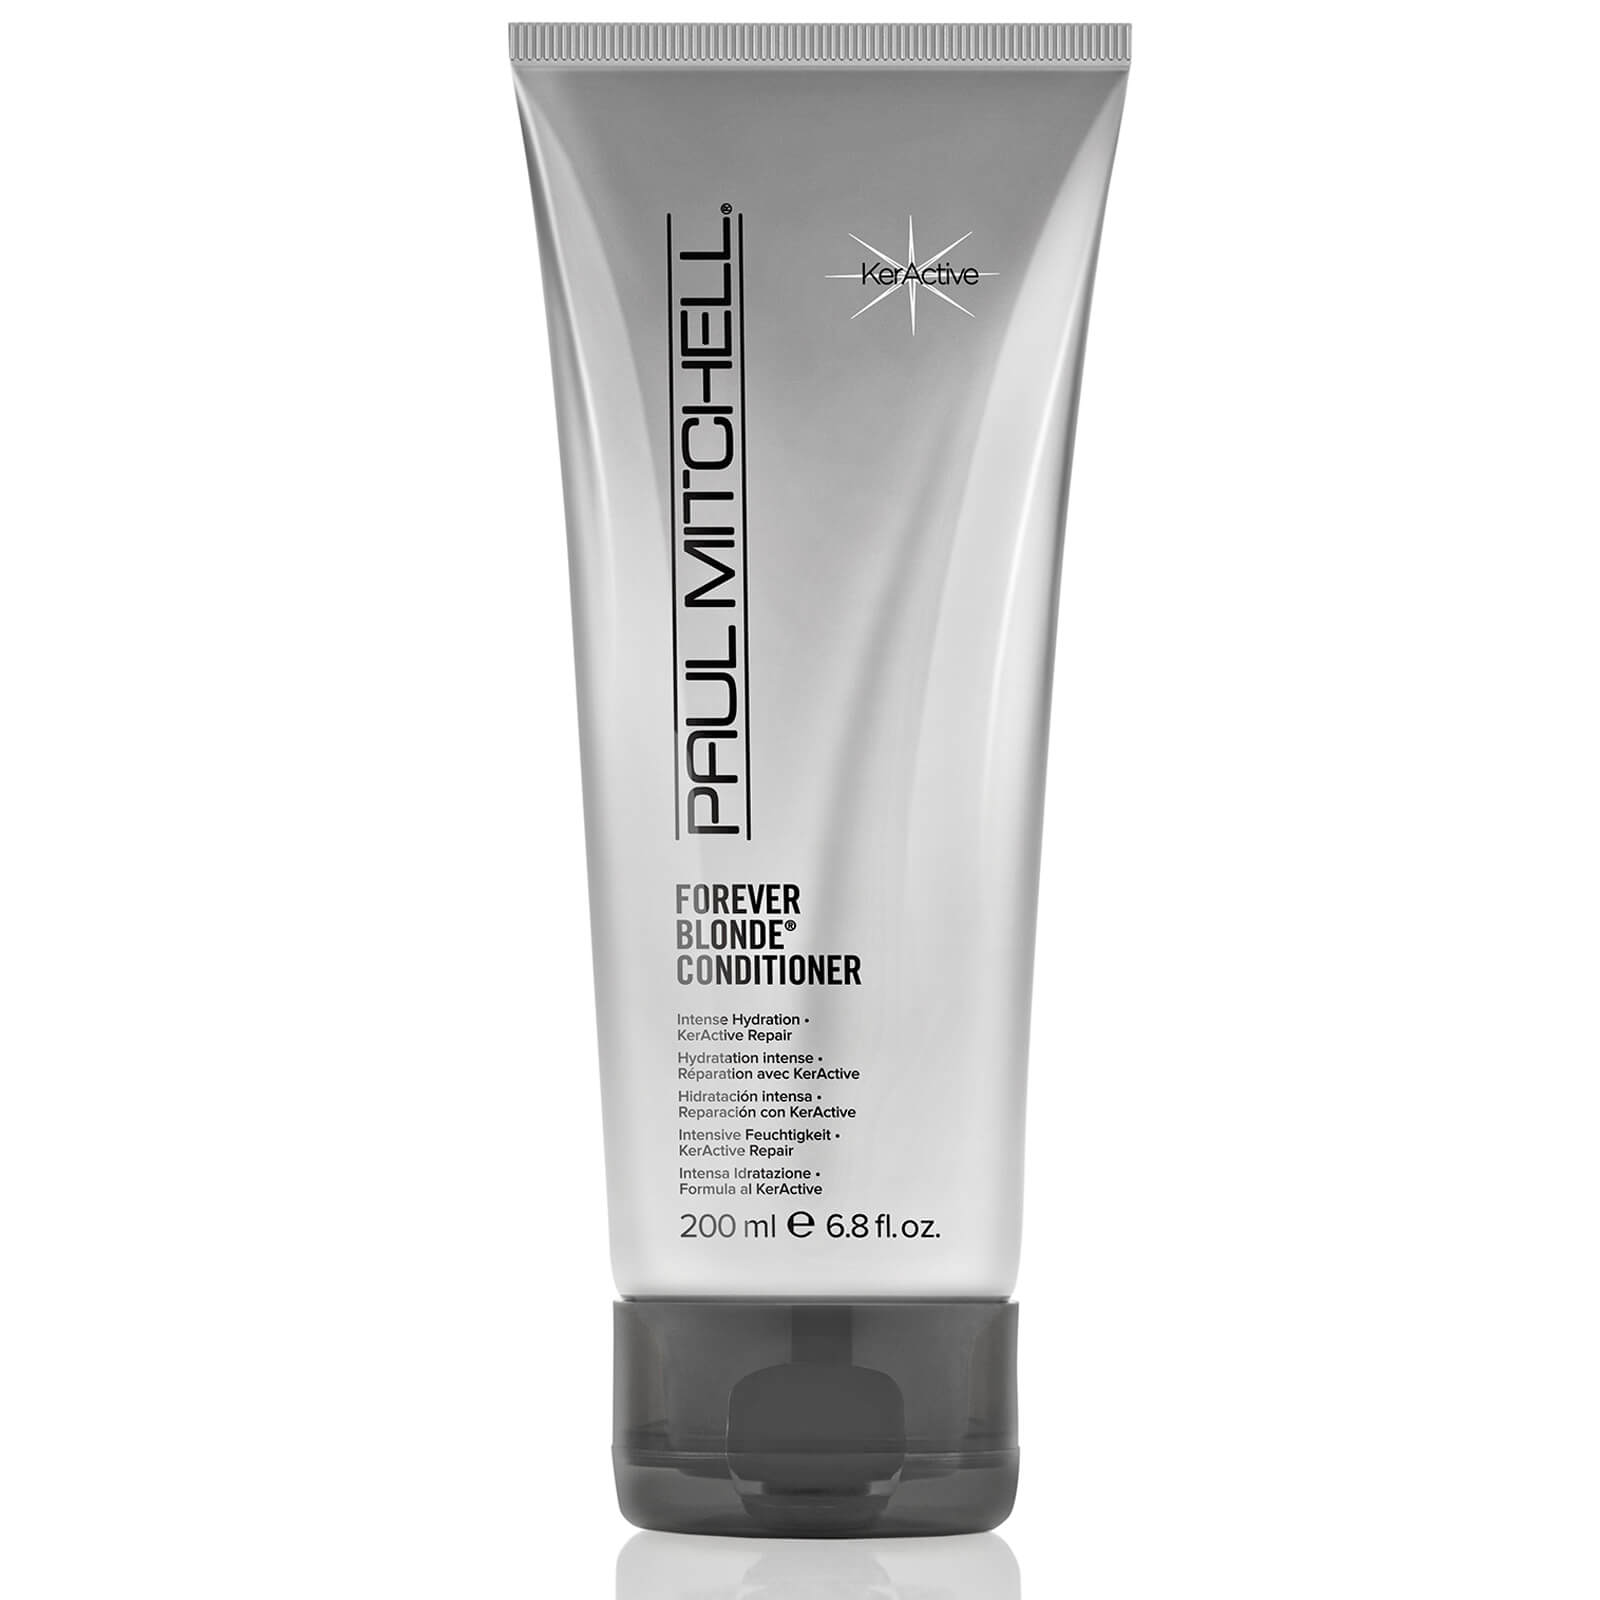 Paul Mitchell Forever Blonde Conditioner - 200ml